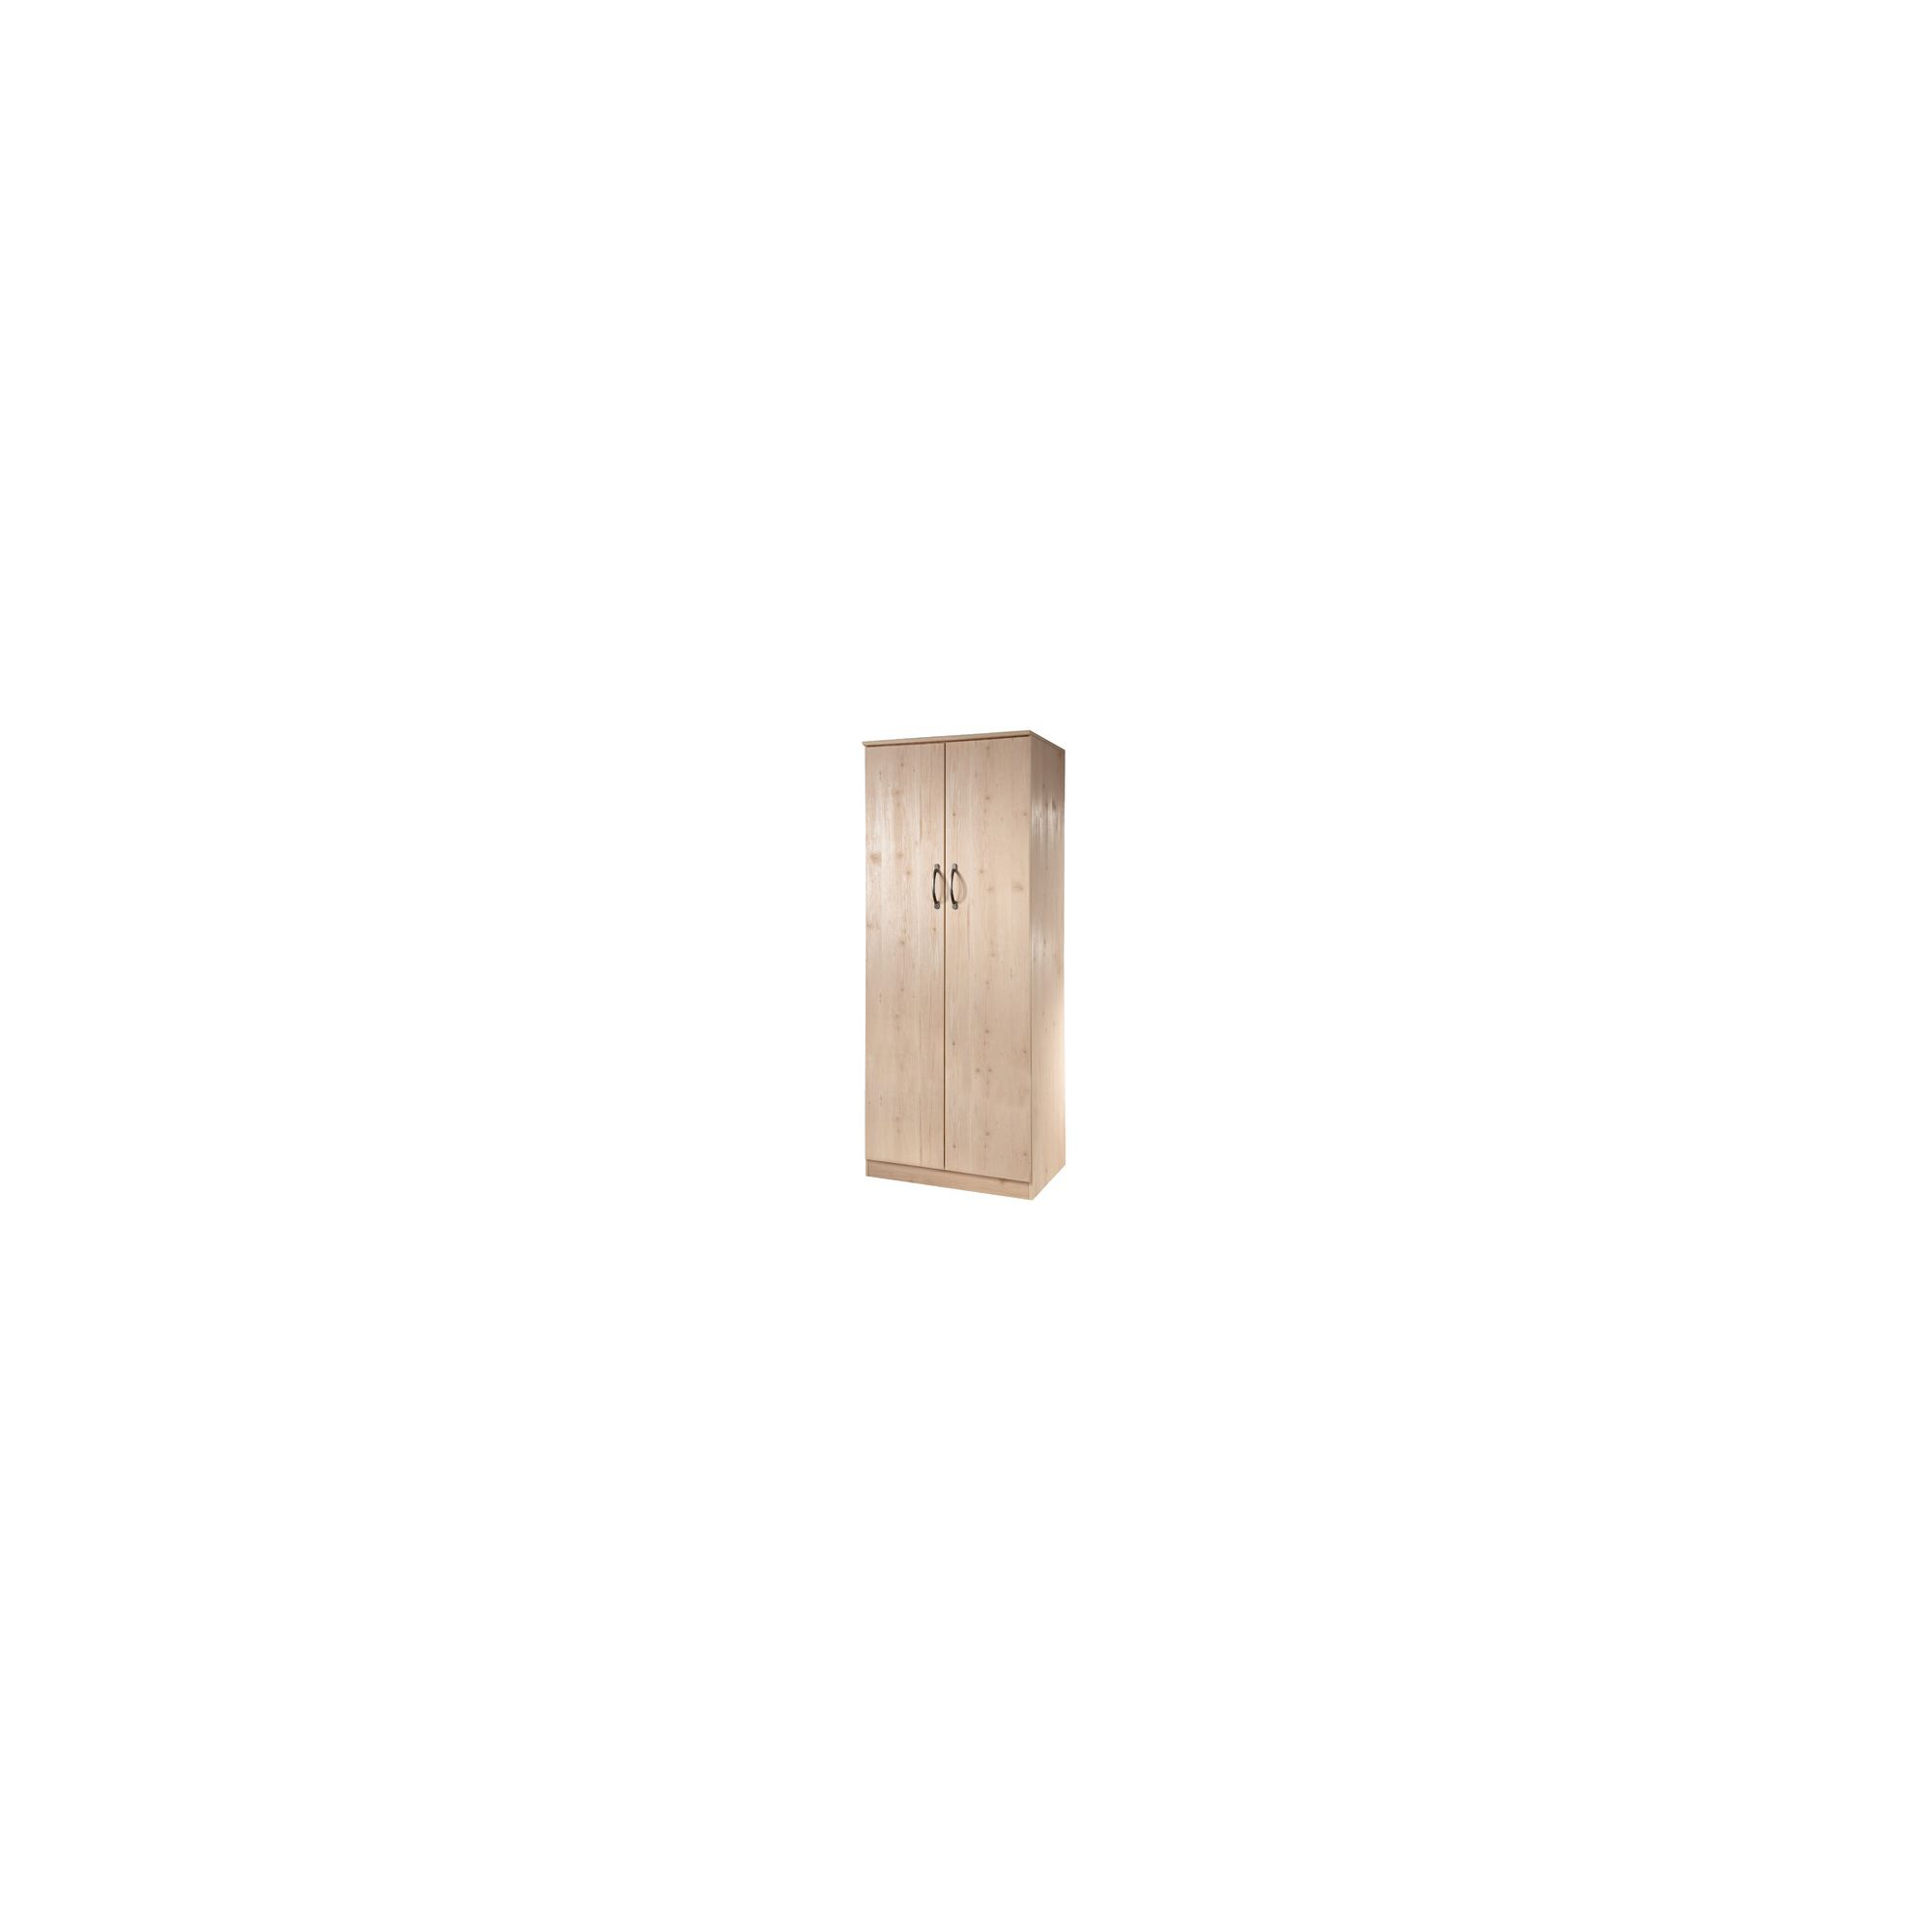 Welcome Furniture Florida Plain Wardrobe - 182.5cm H x 74cm W at Tesco Direct